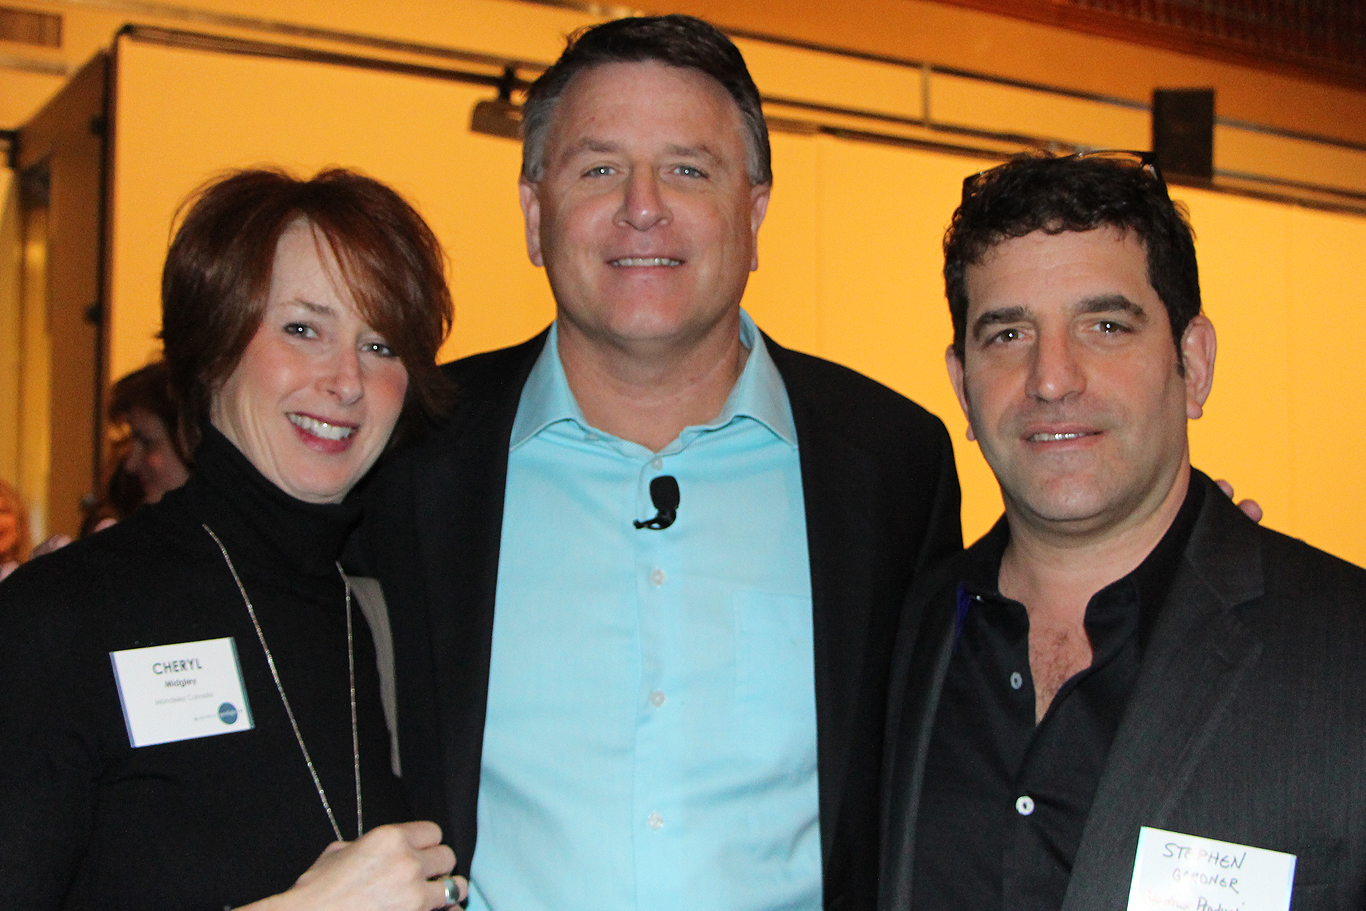 Steve Gardner (right), with speaker David Chilton and Cheryl Midgley of Mondelez Canada